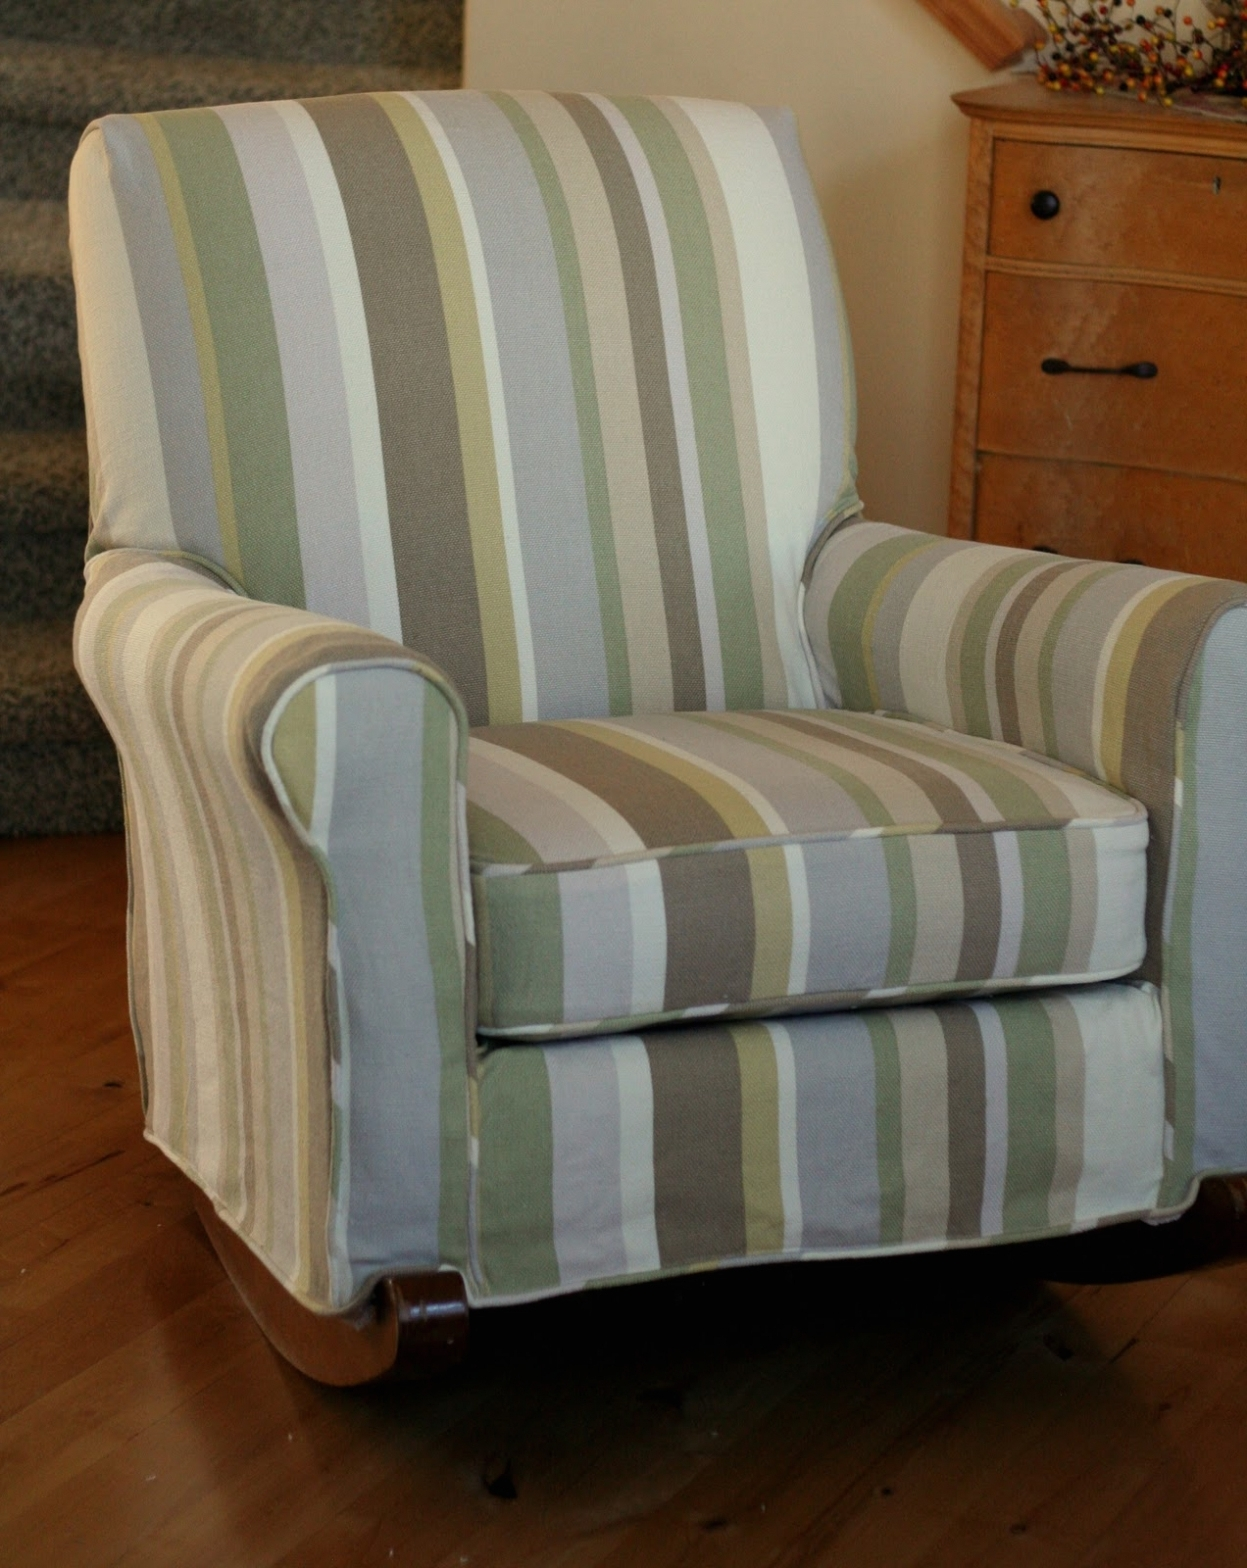 Well Known Table & Chair: Upholstered Rocking Chair Covers • Chair Covers Throughout Upholstered Rocking Chairs (View 17 of 20)